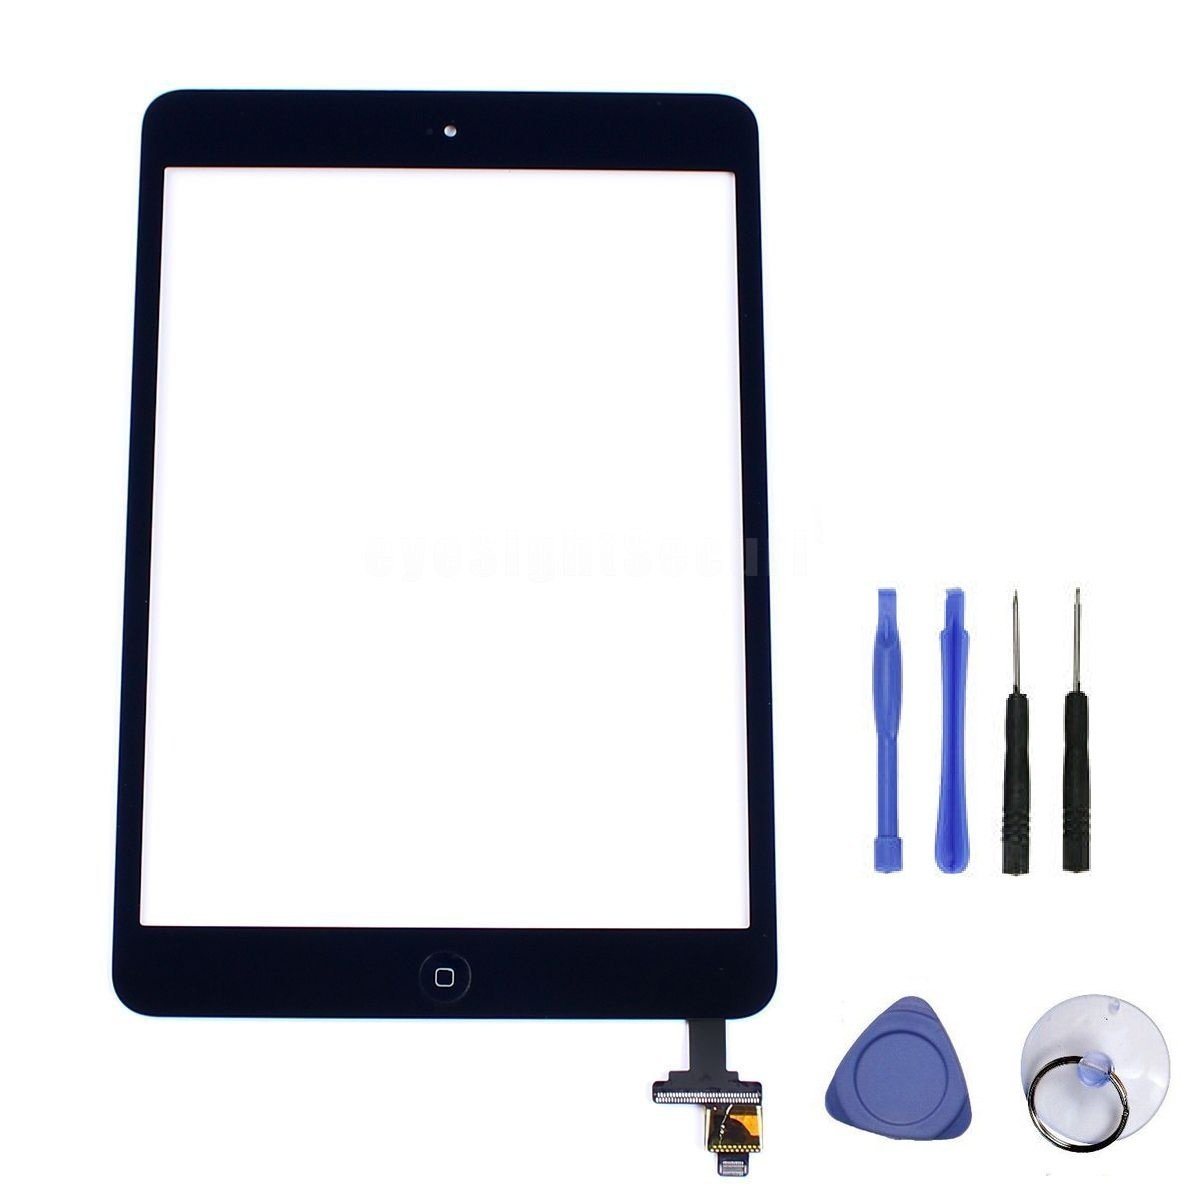 Black Touch Screen Glass Digitizer + Home Button + IC + Adhesive for iPad Mini 2